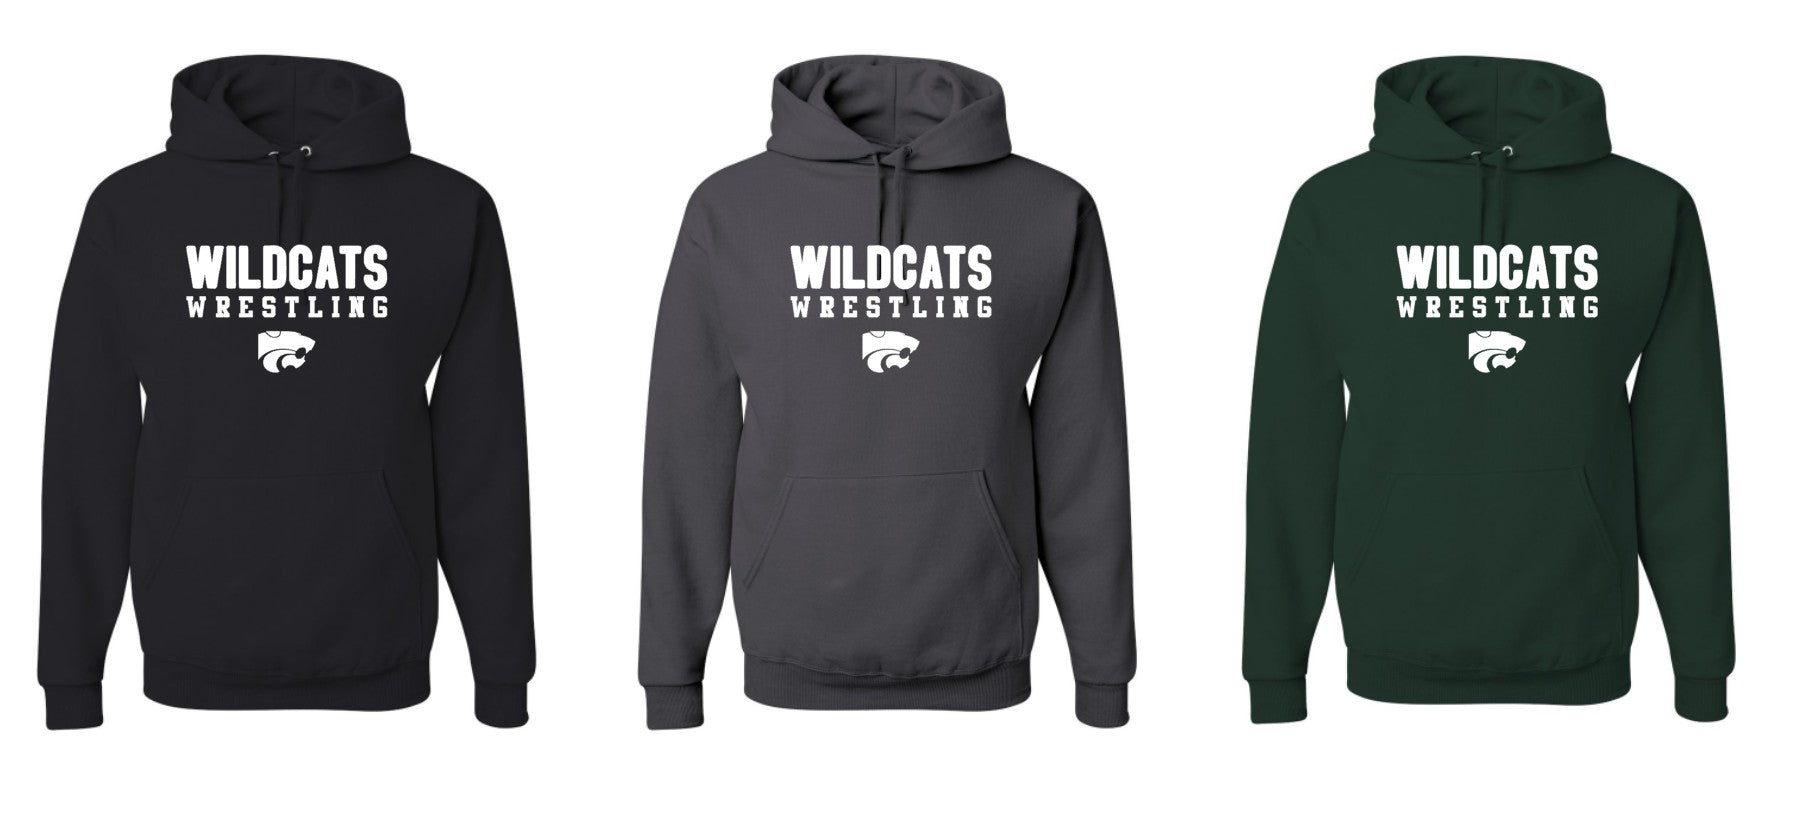 Wildcats Wrestling C Traditional Hoodies